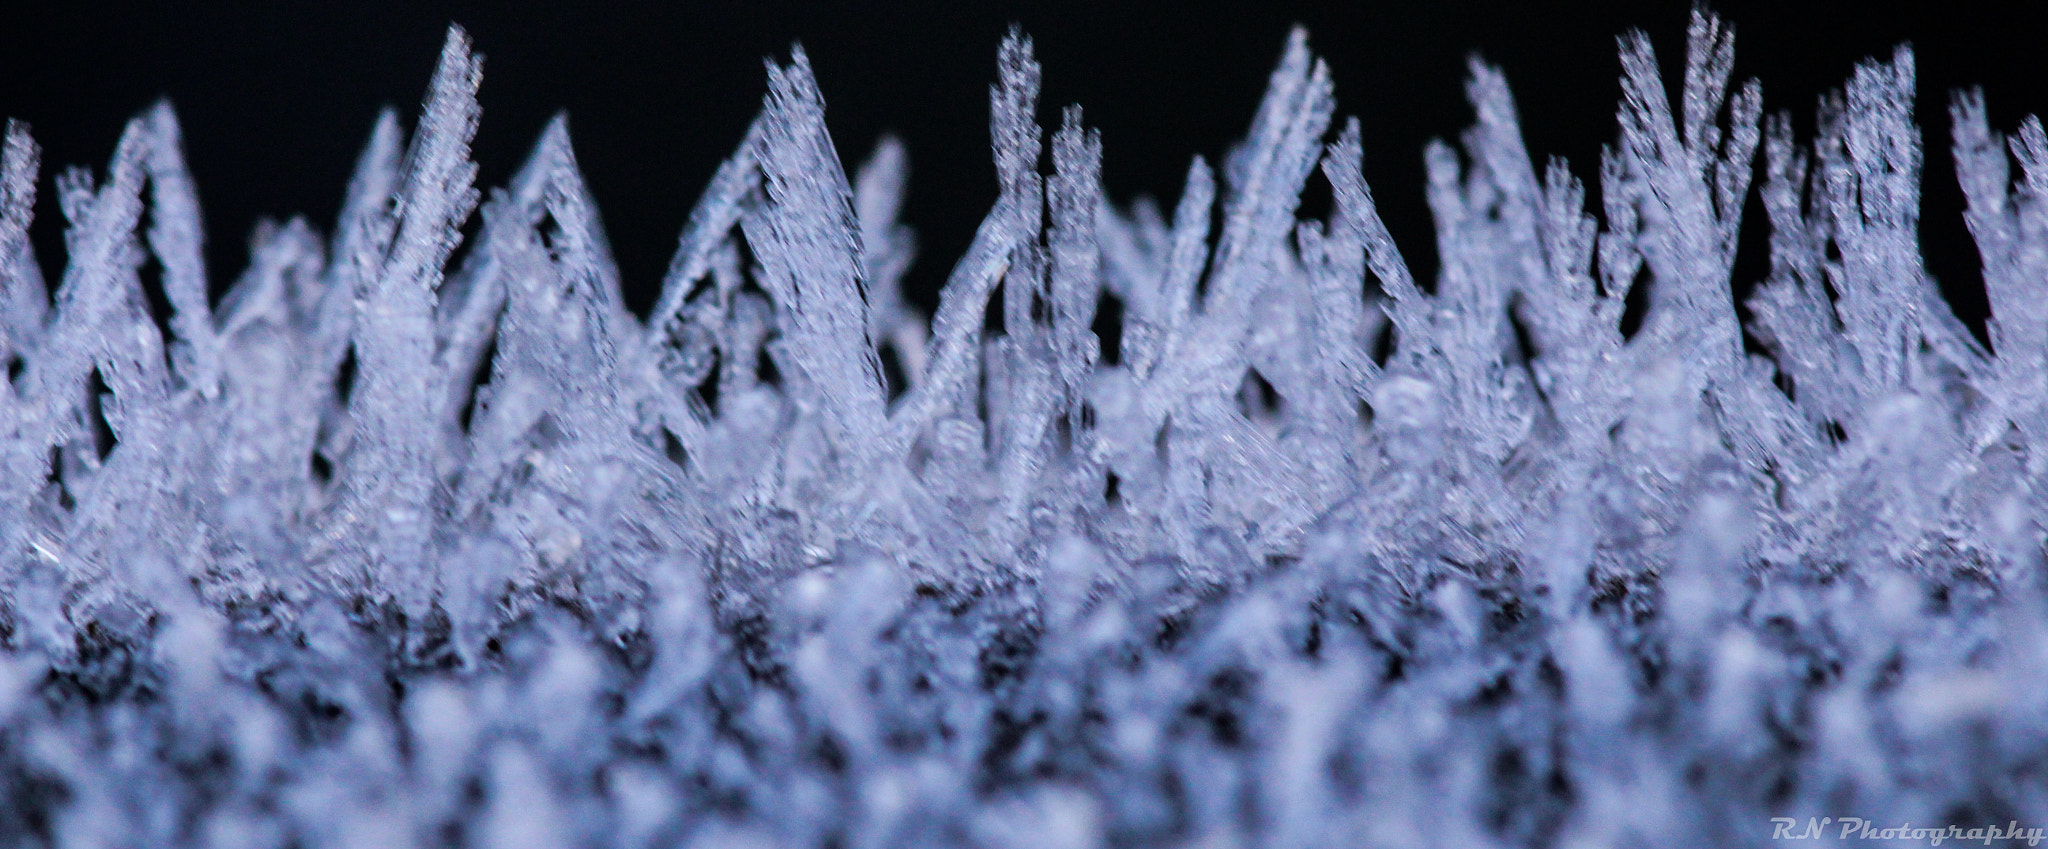 Photograph Frost 3 by Richard Nurse on 500px